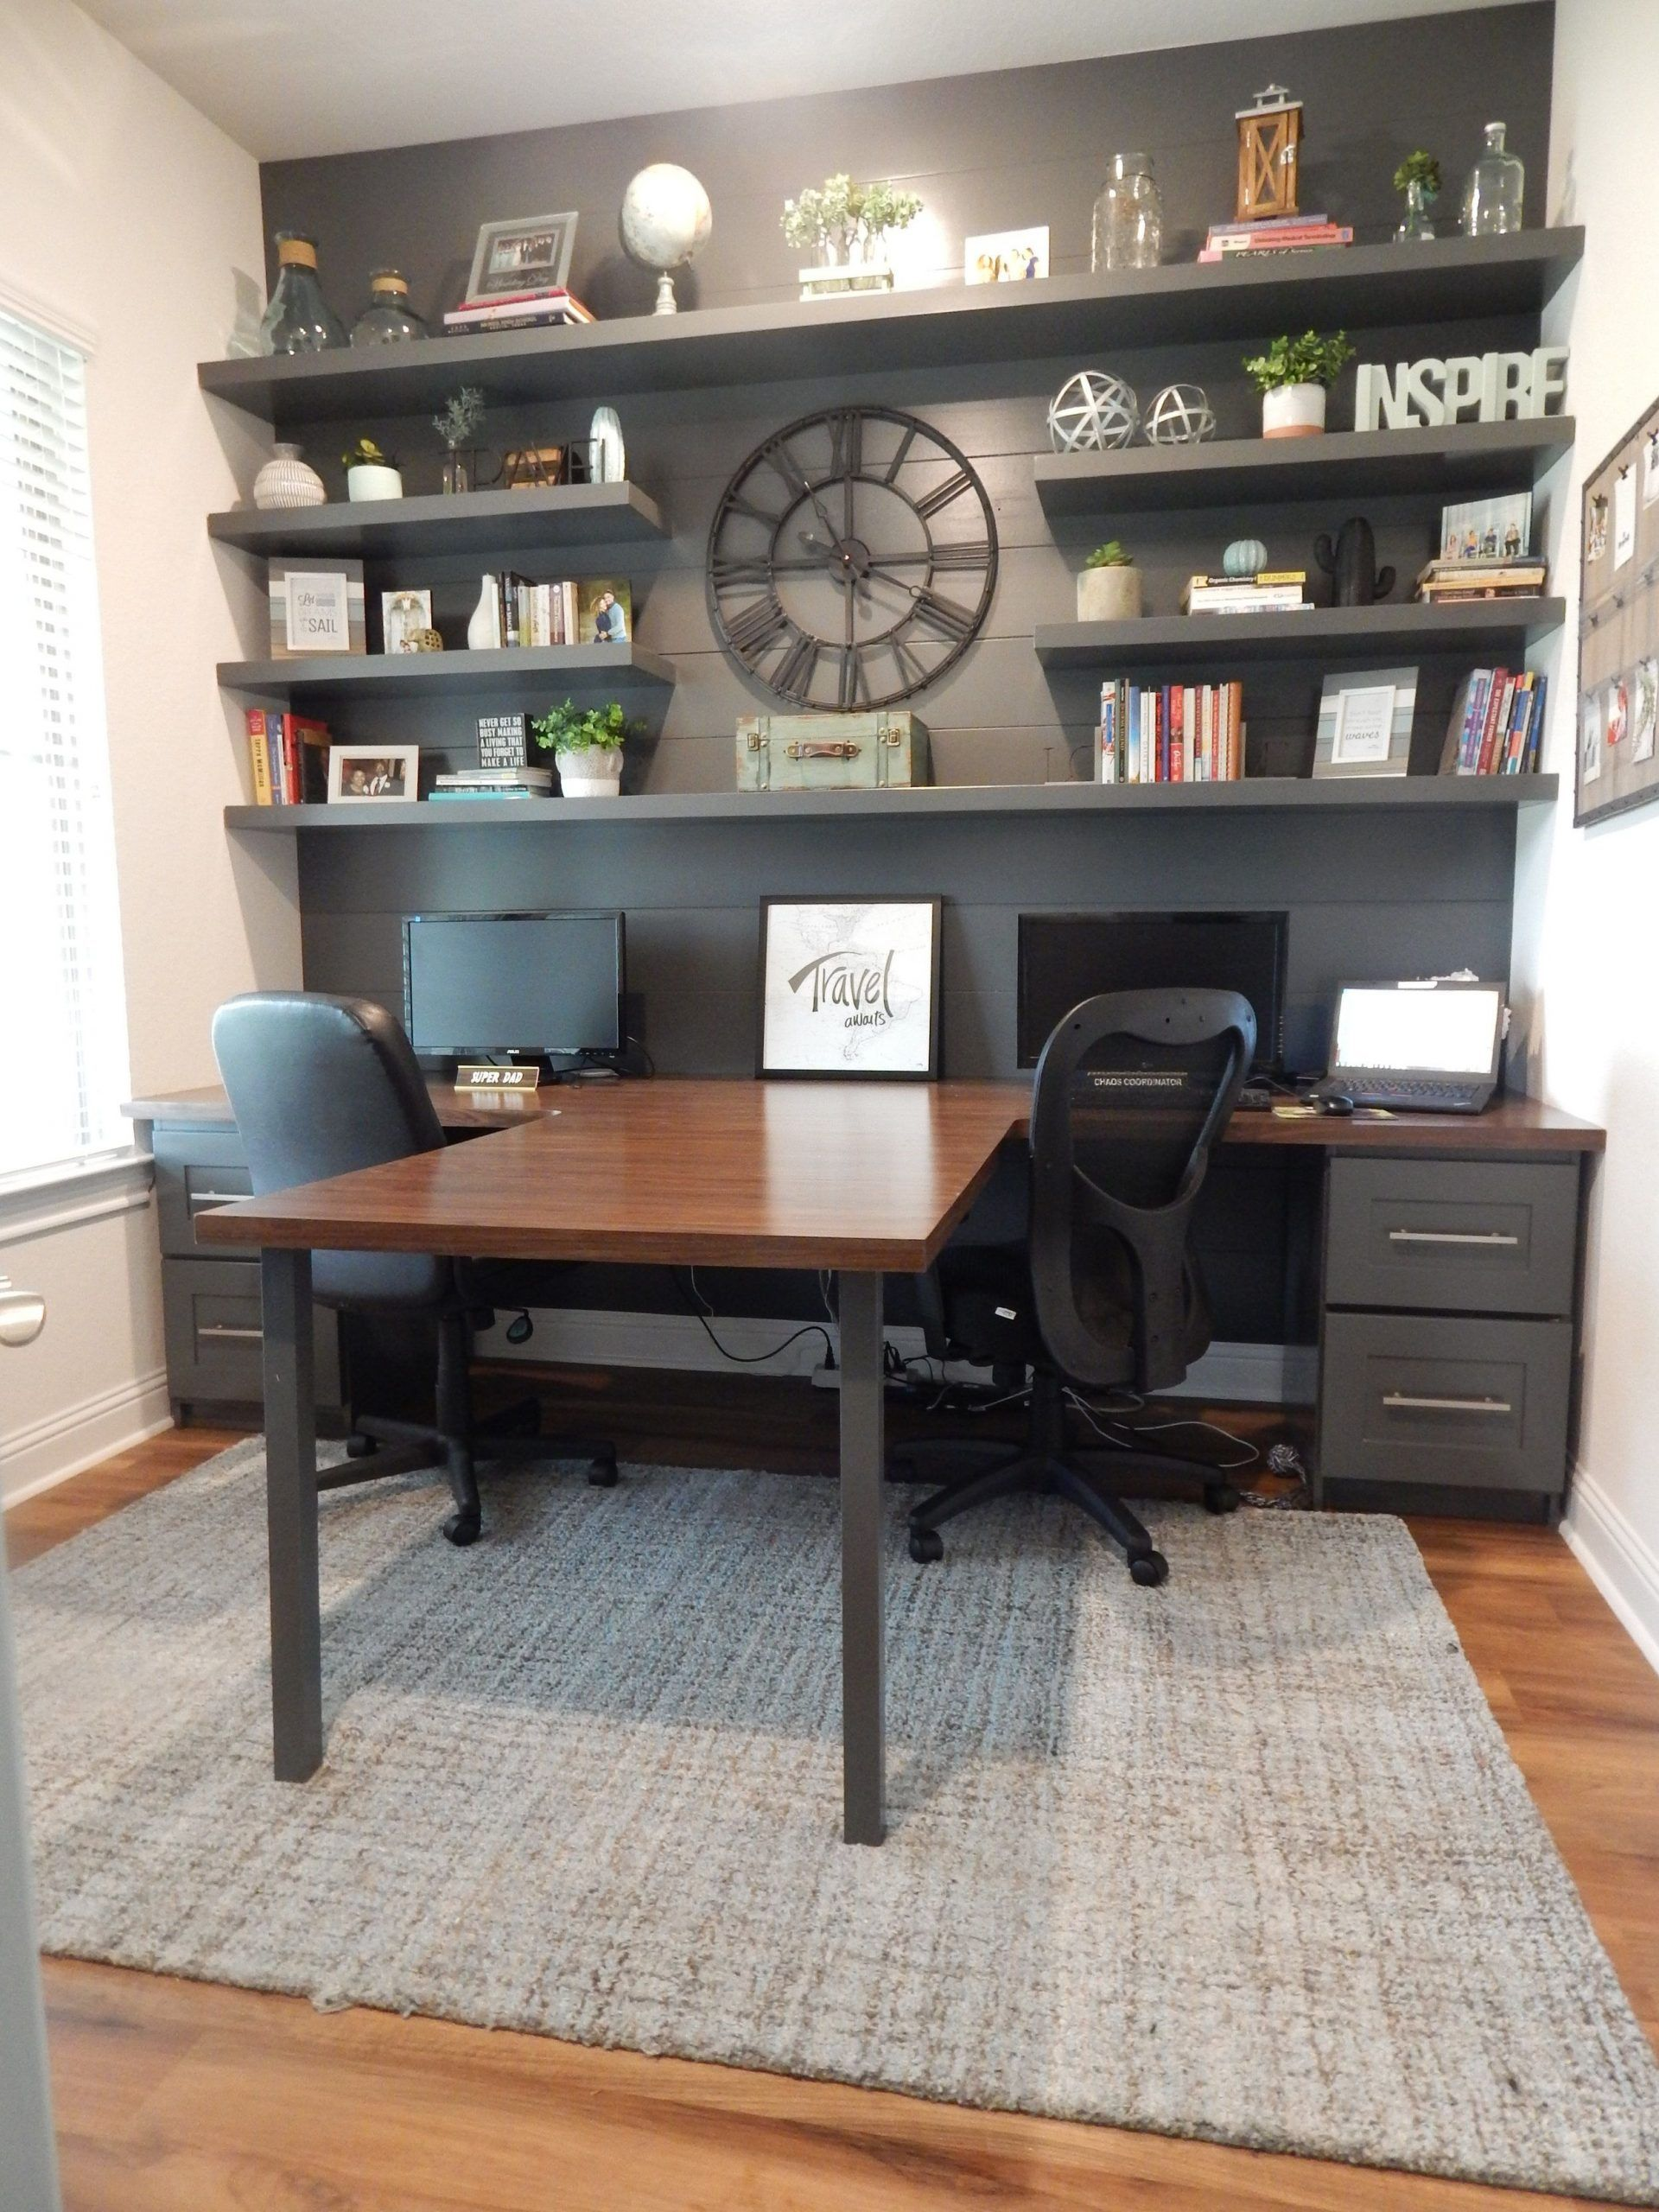 Pin By Angelica Fox On Room Decoration Ideas In 2020 Home Office